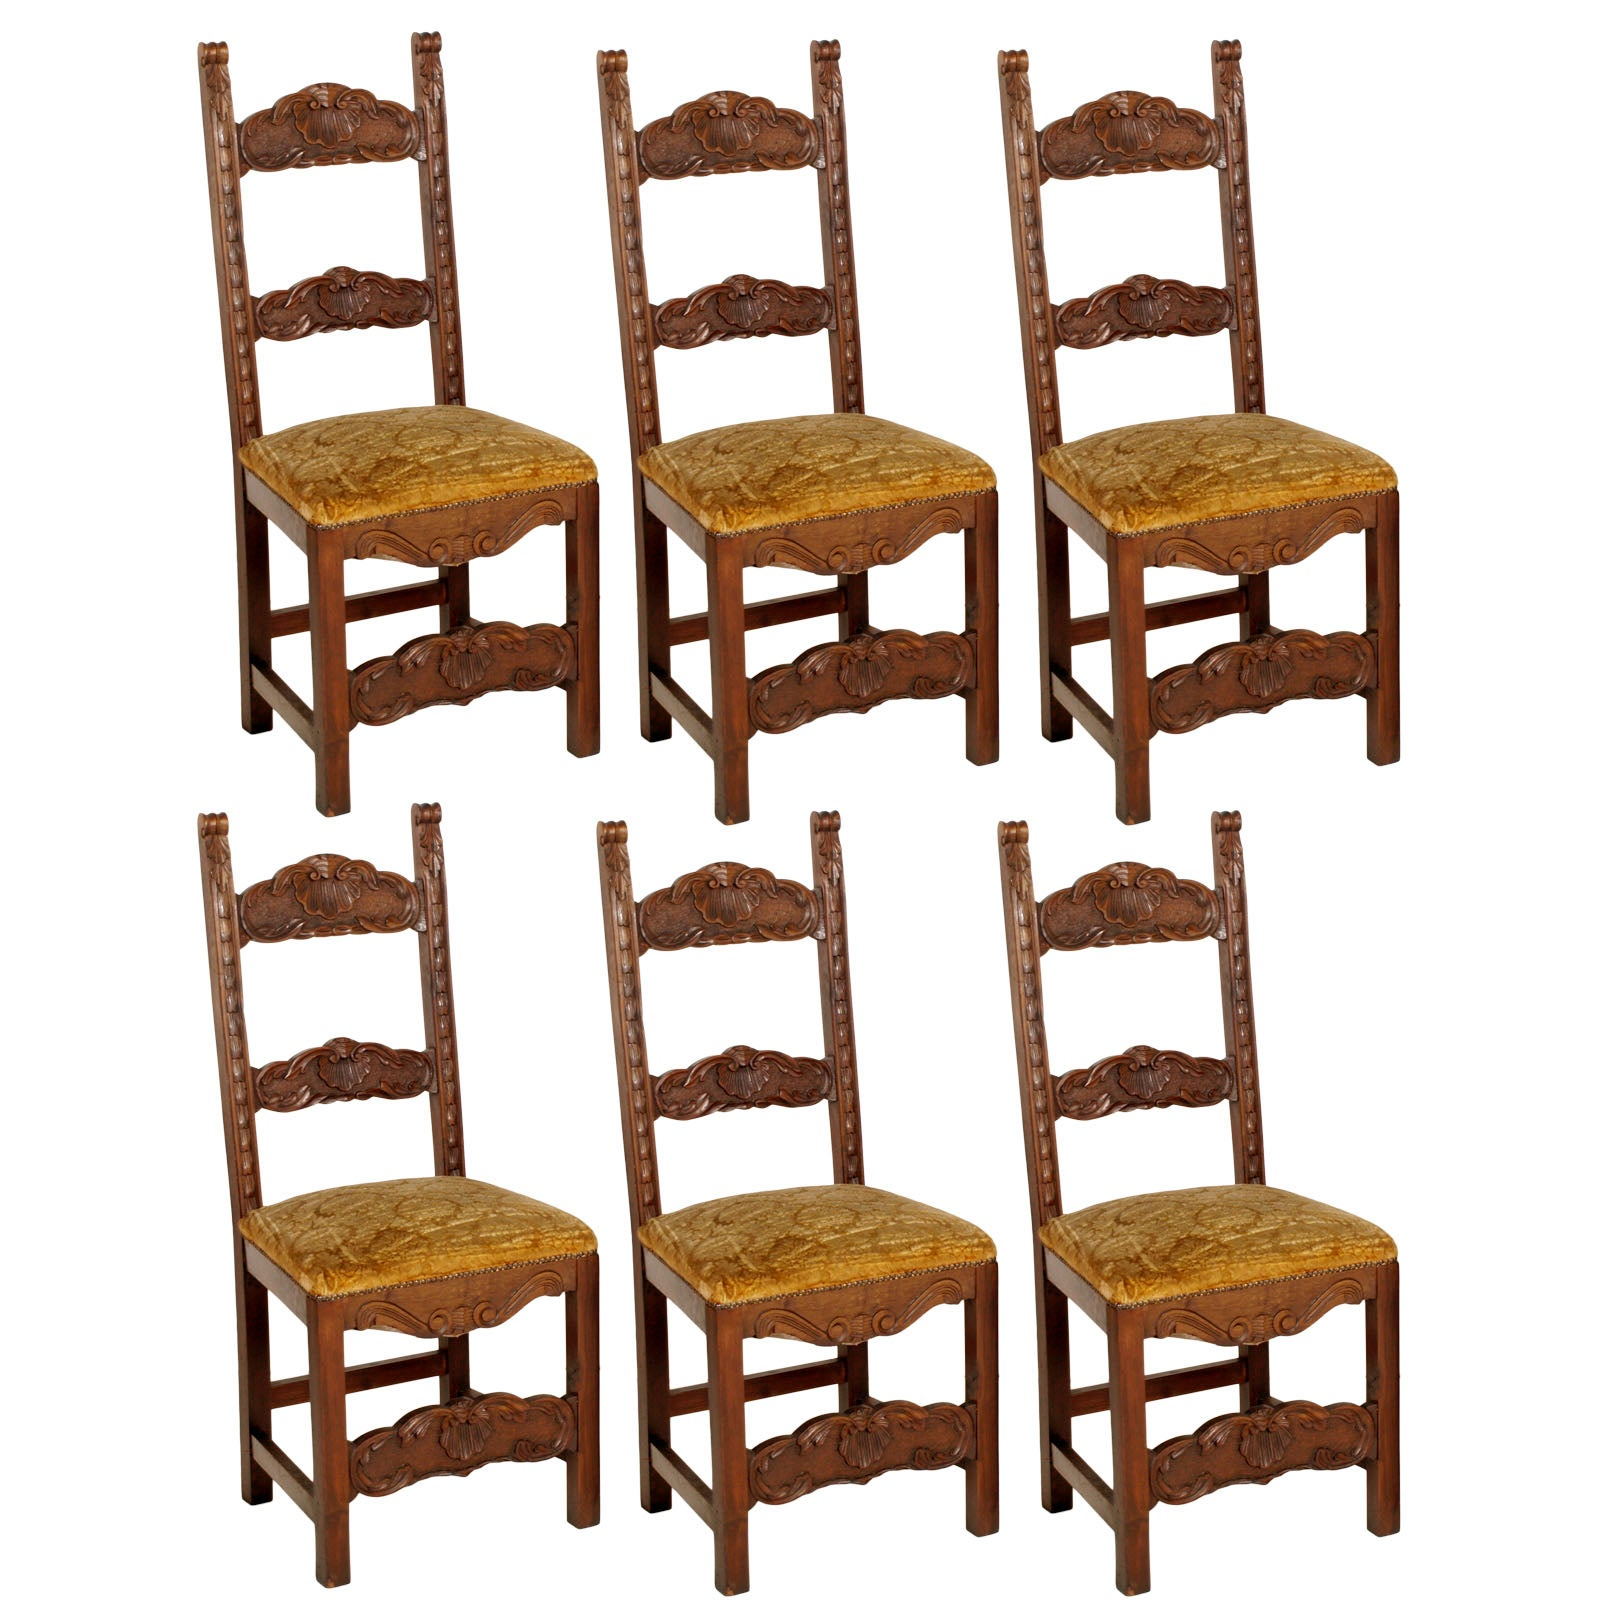 19th Century Set Six Renaissance Chairs in Hand-Carved Walnut, Spring Seat